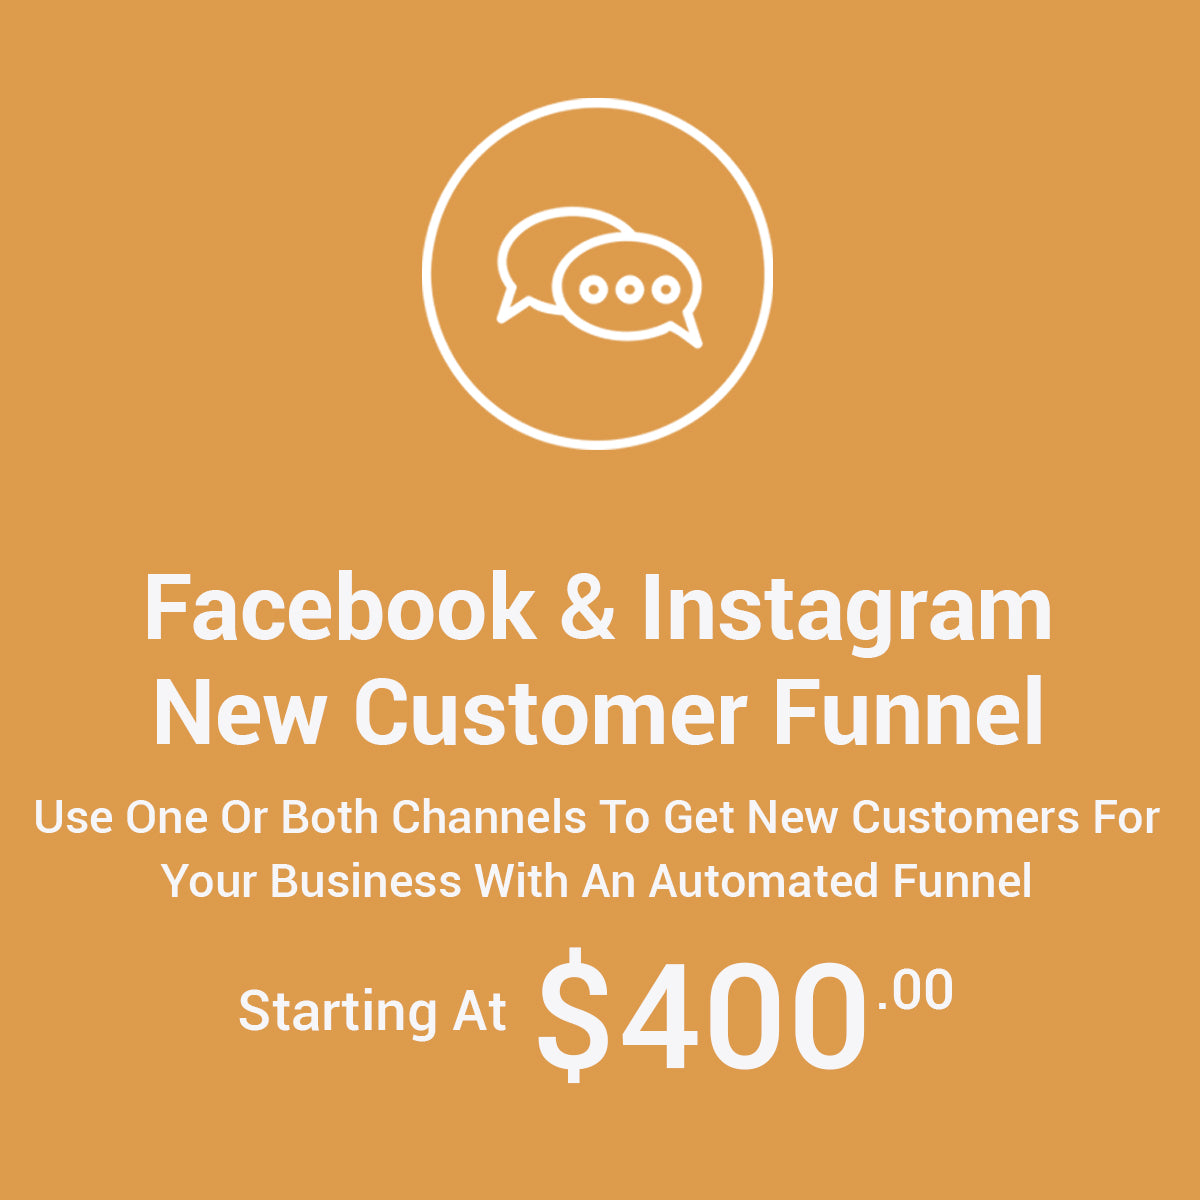 Facebook & Instagram New Customer Acquisition Funnel